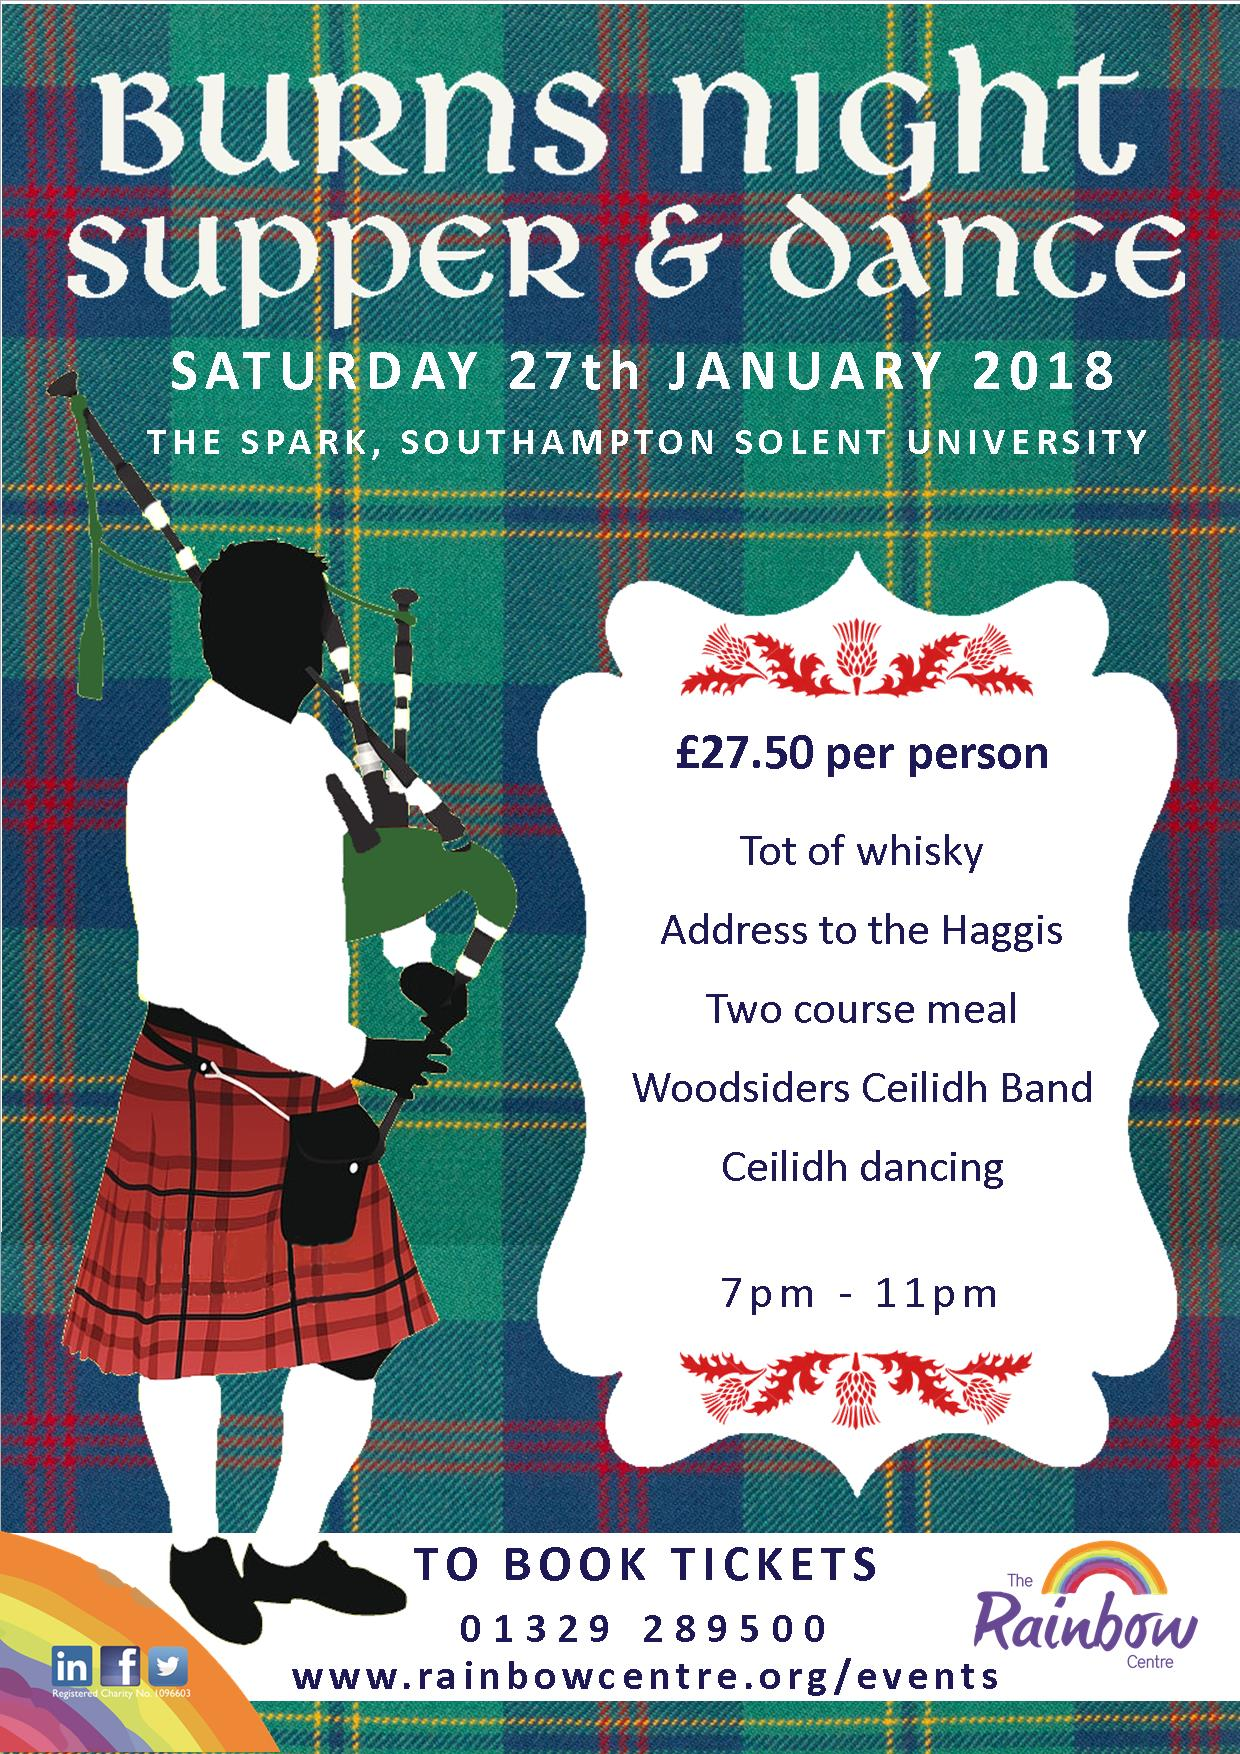 Burns Night Supper & Dance event Southampton 2018